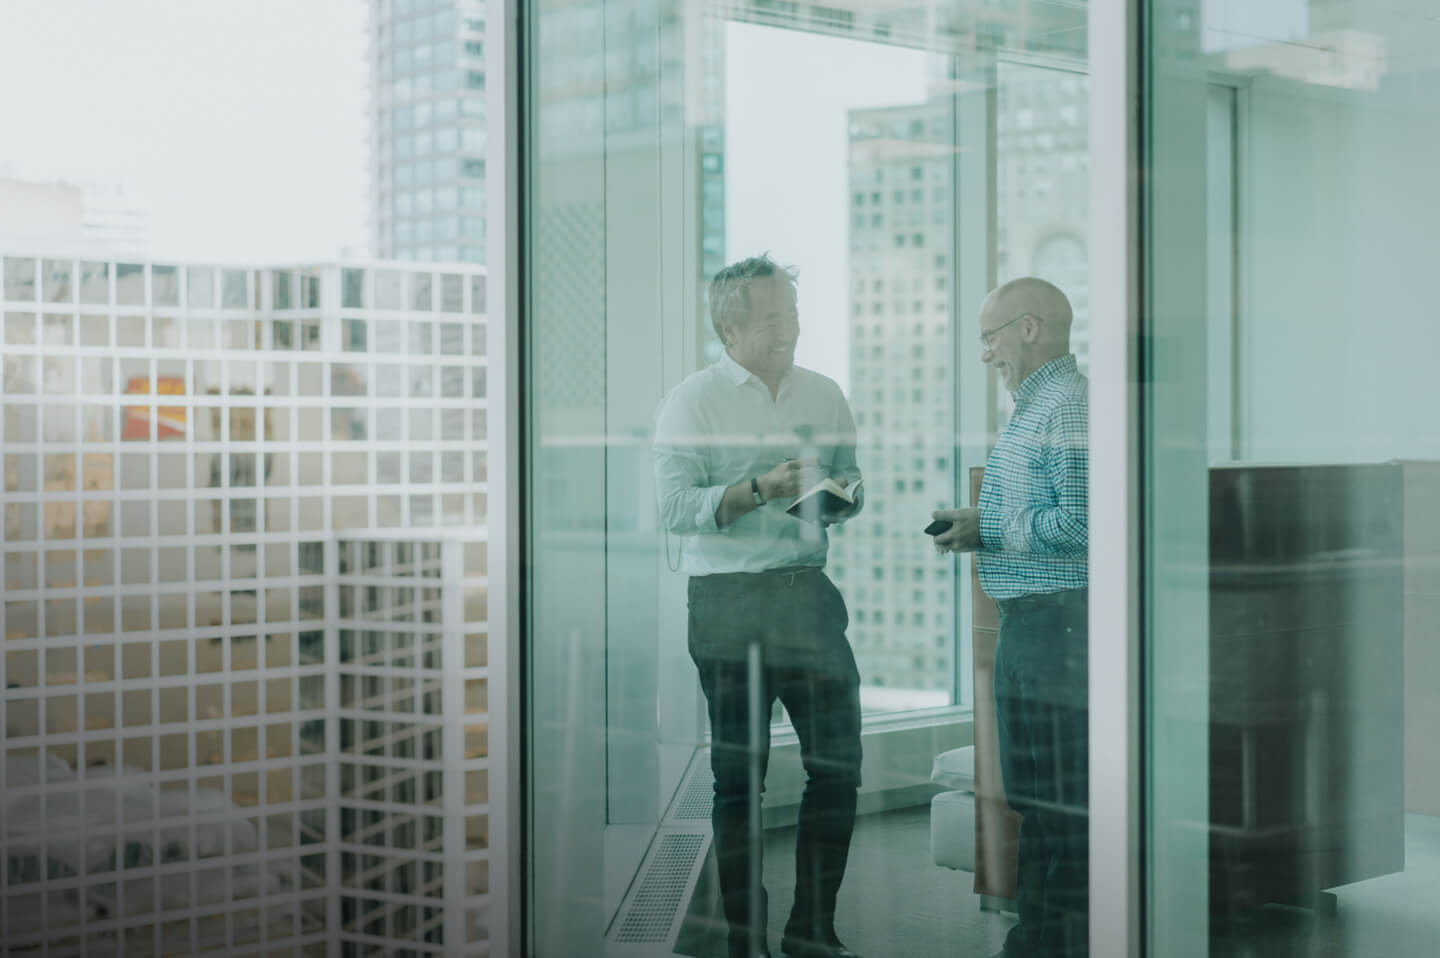 Two men standing in front of large glass windows having a conversation